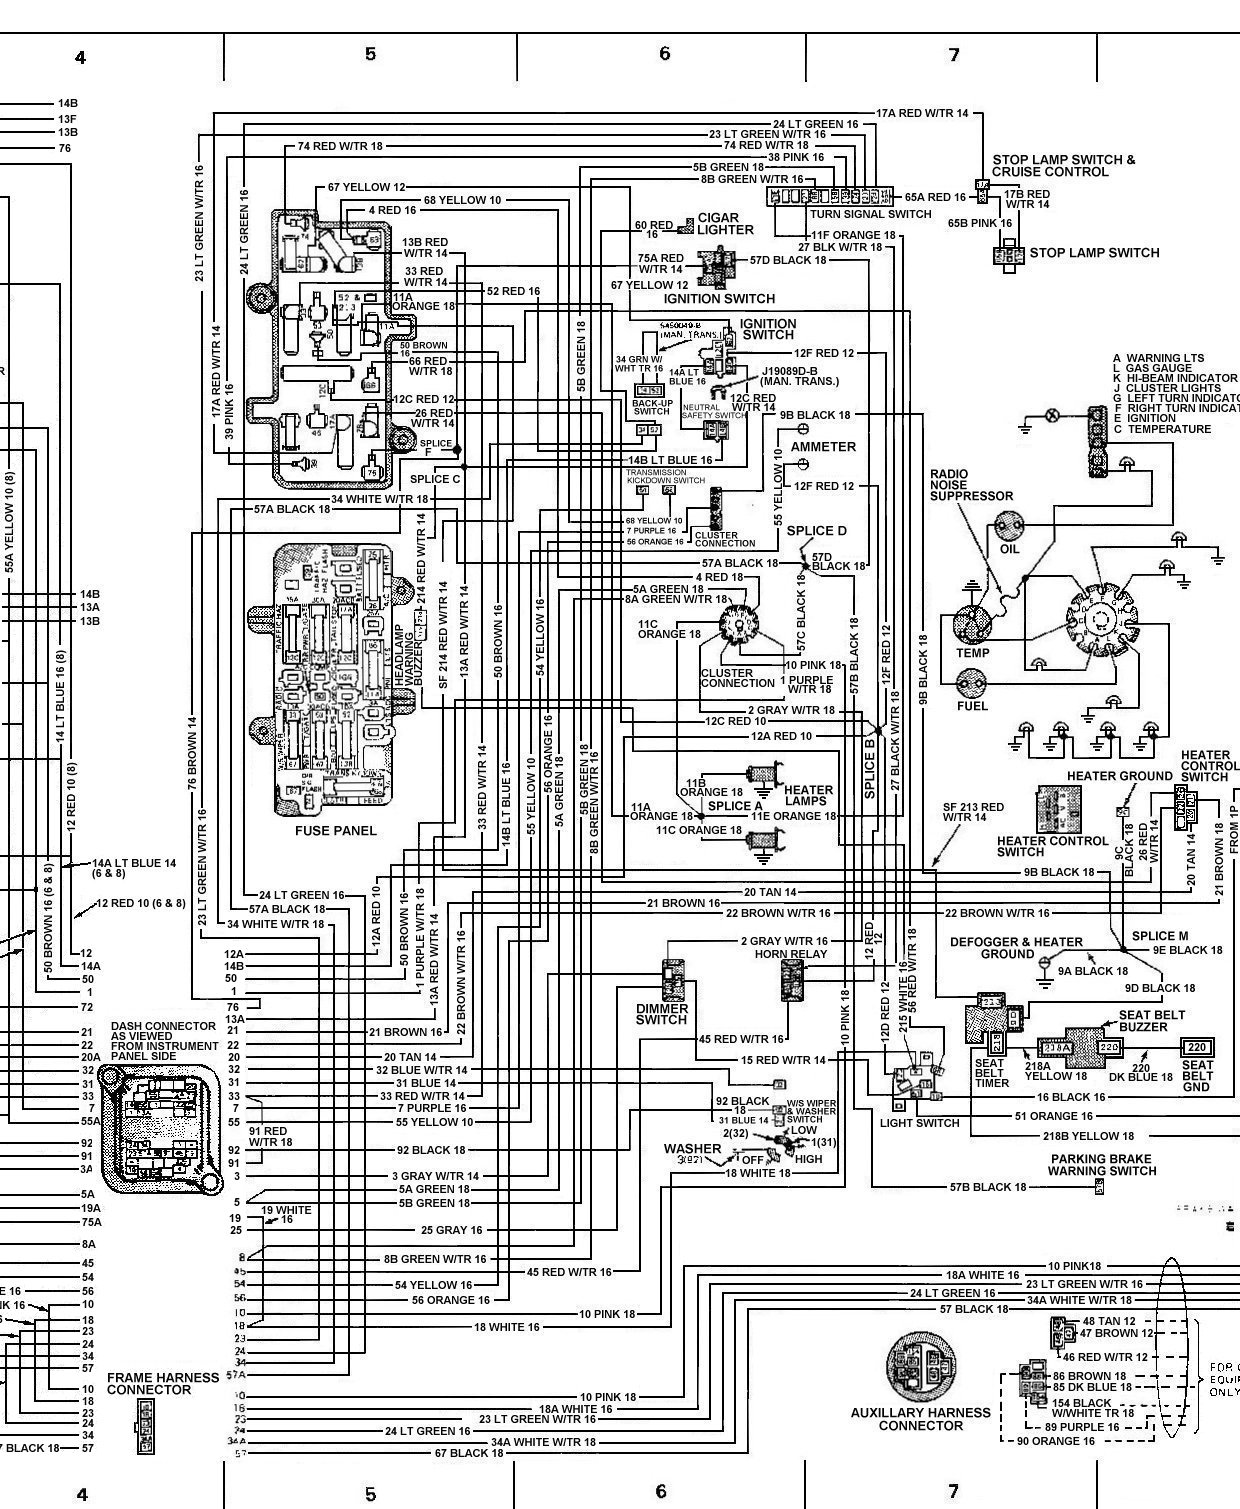 1g dsm ecu wiring diagram qFluSrO 1g dsm ecu wiring diagram image details 1g dsm fuel pump wiring diagram at panicattacktreatment.co